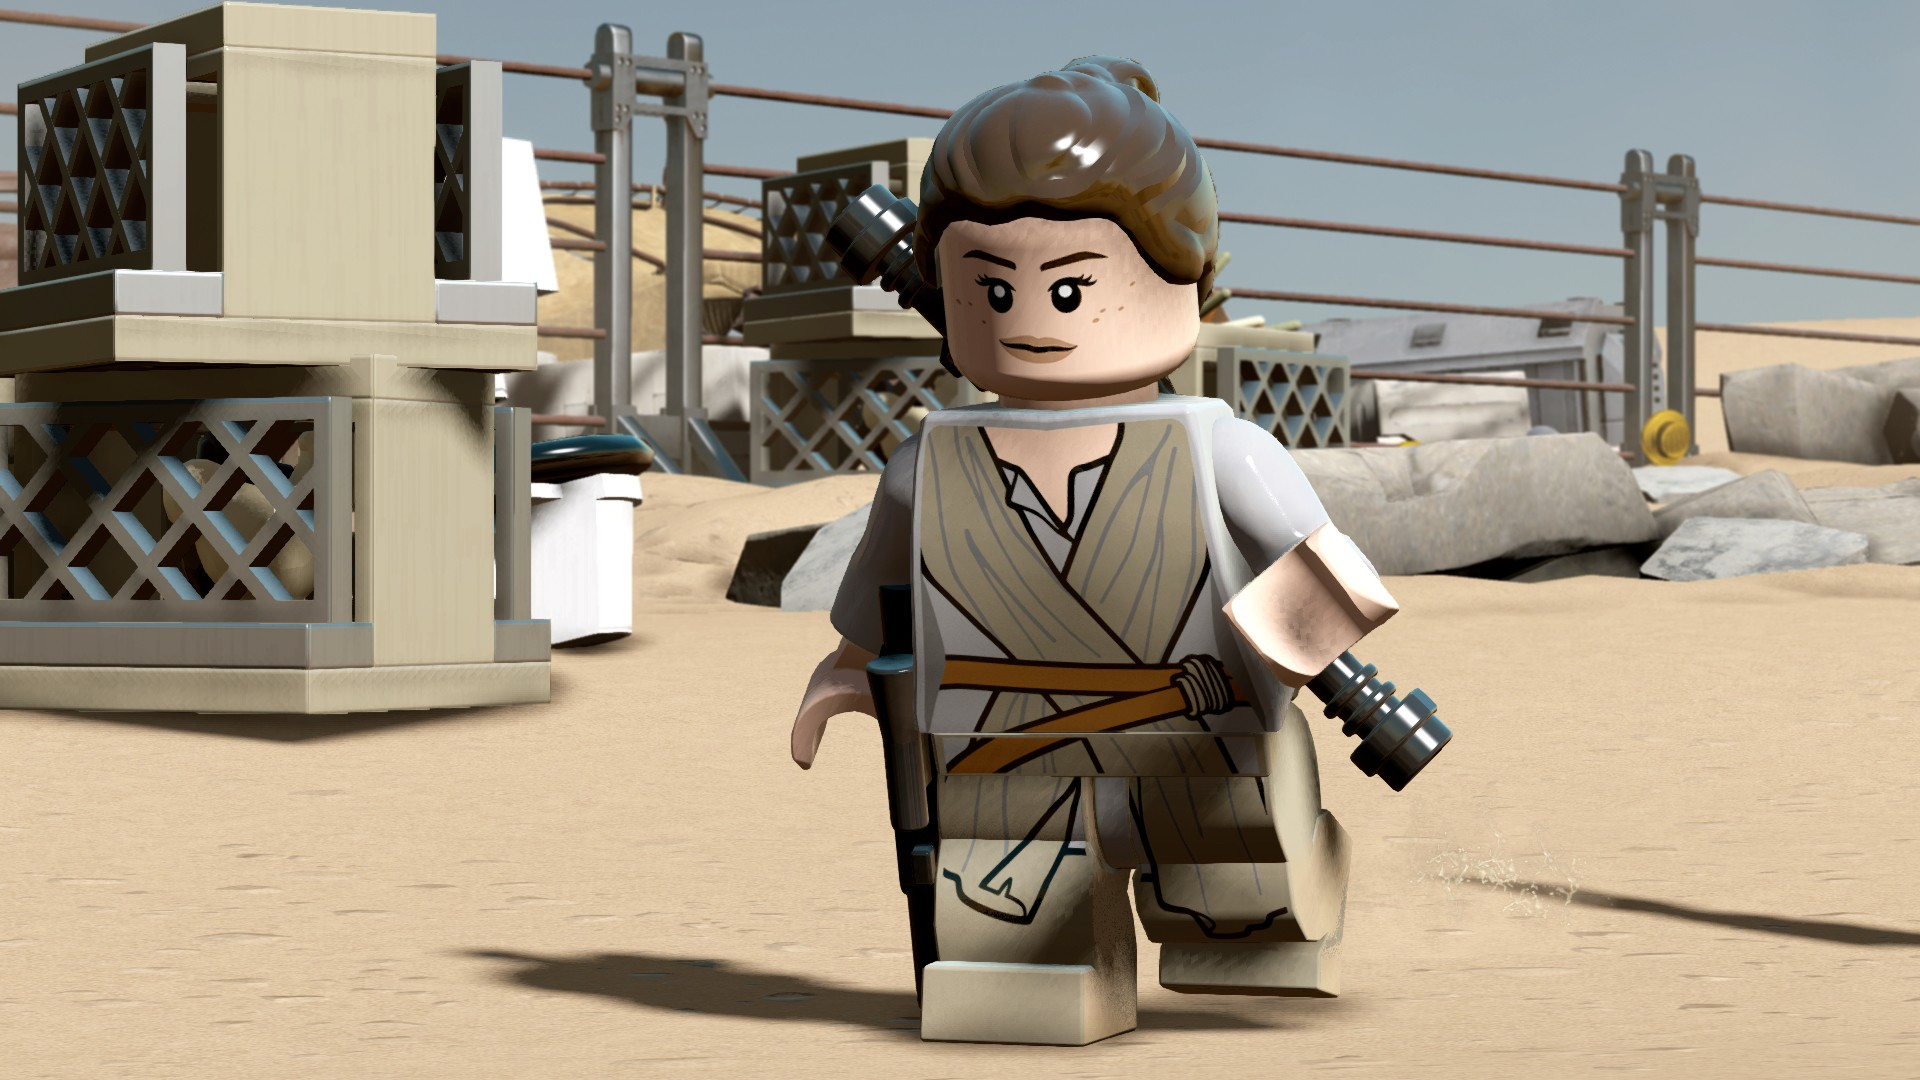 Buy Lego Star Wars The Force Awakens Steam